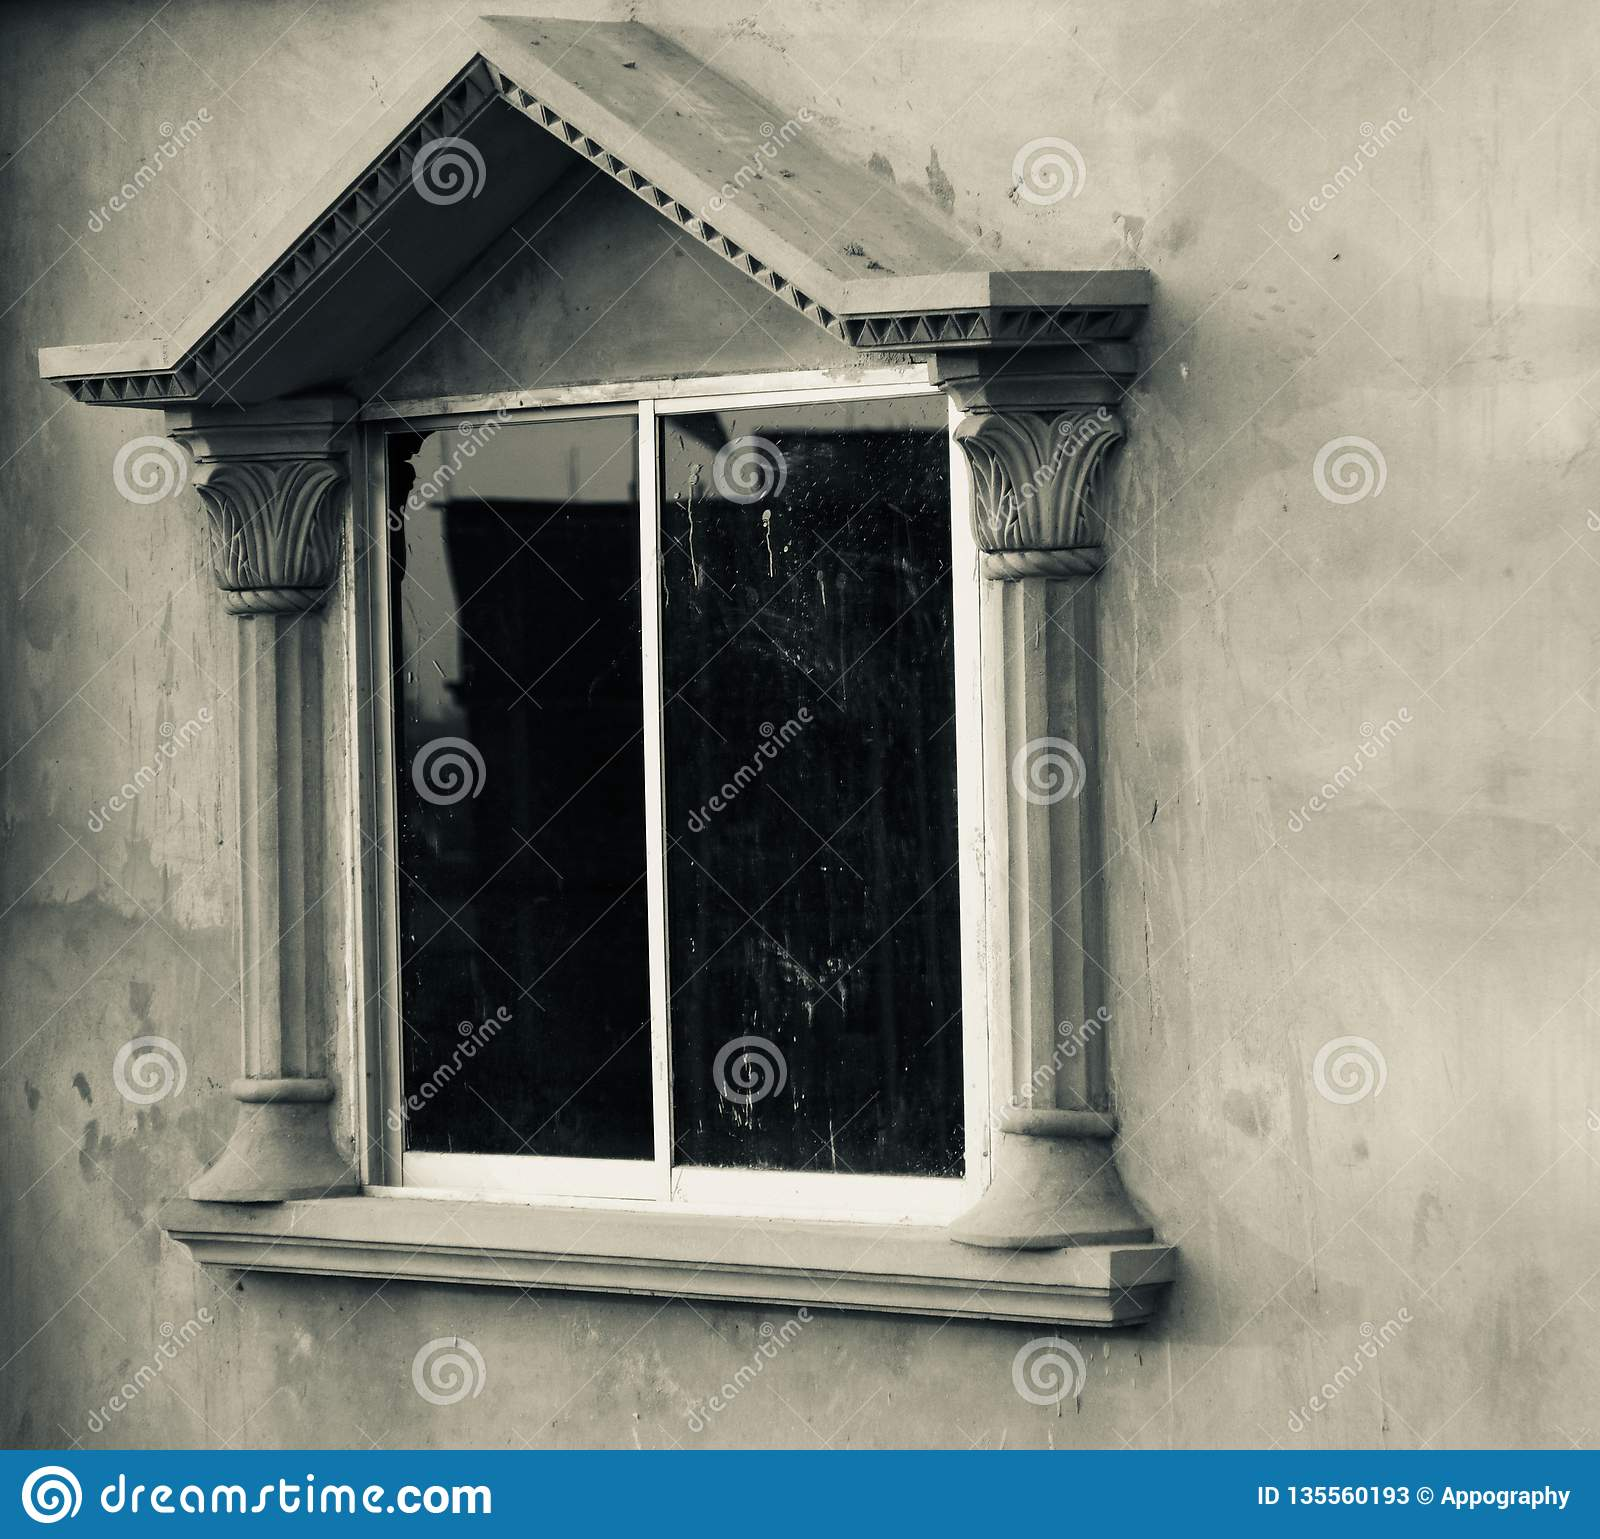 A window of a traditional concrete building